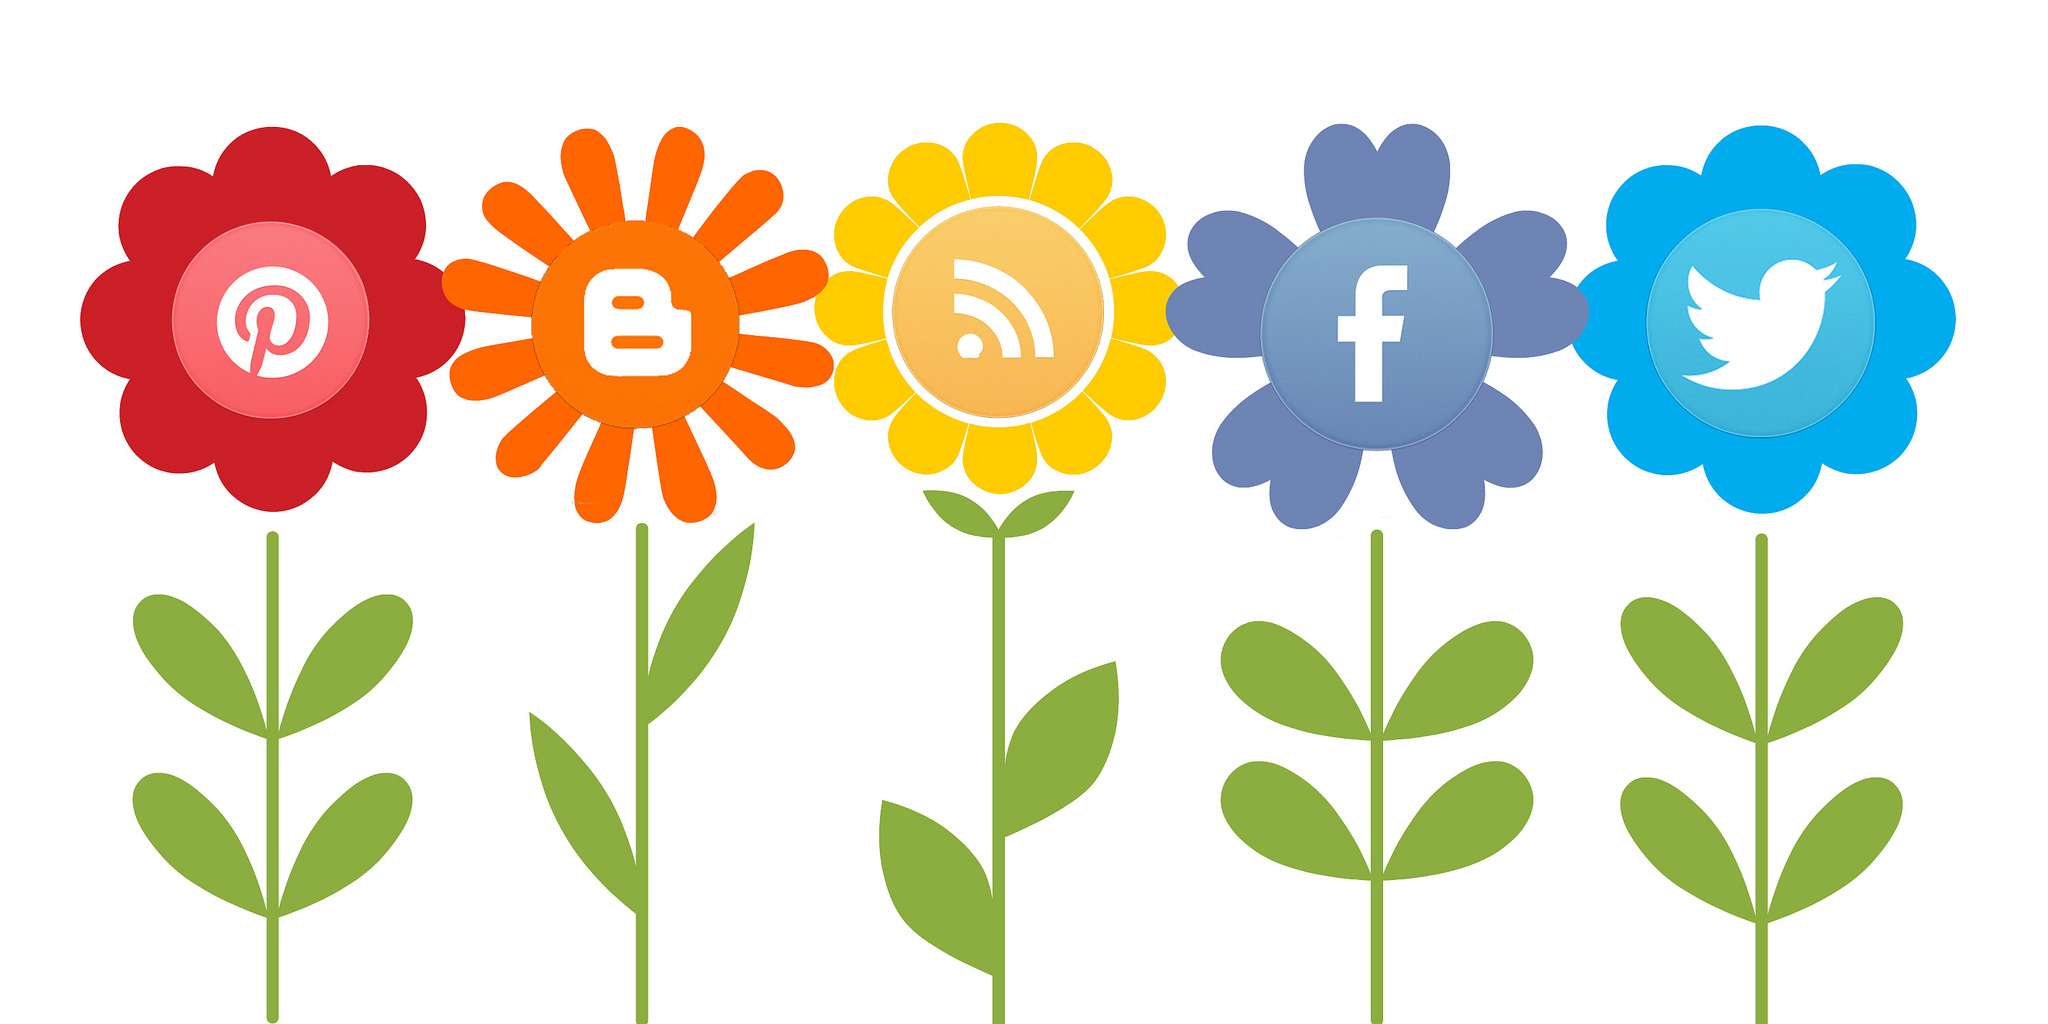 """Growing social media"" by mkhmarketing 2013 CC BY 2.0"